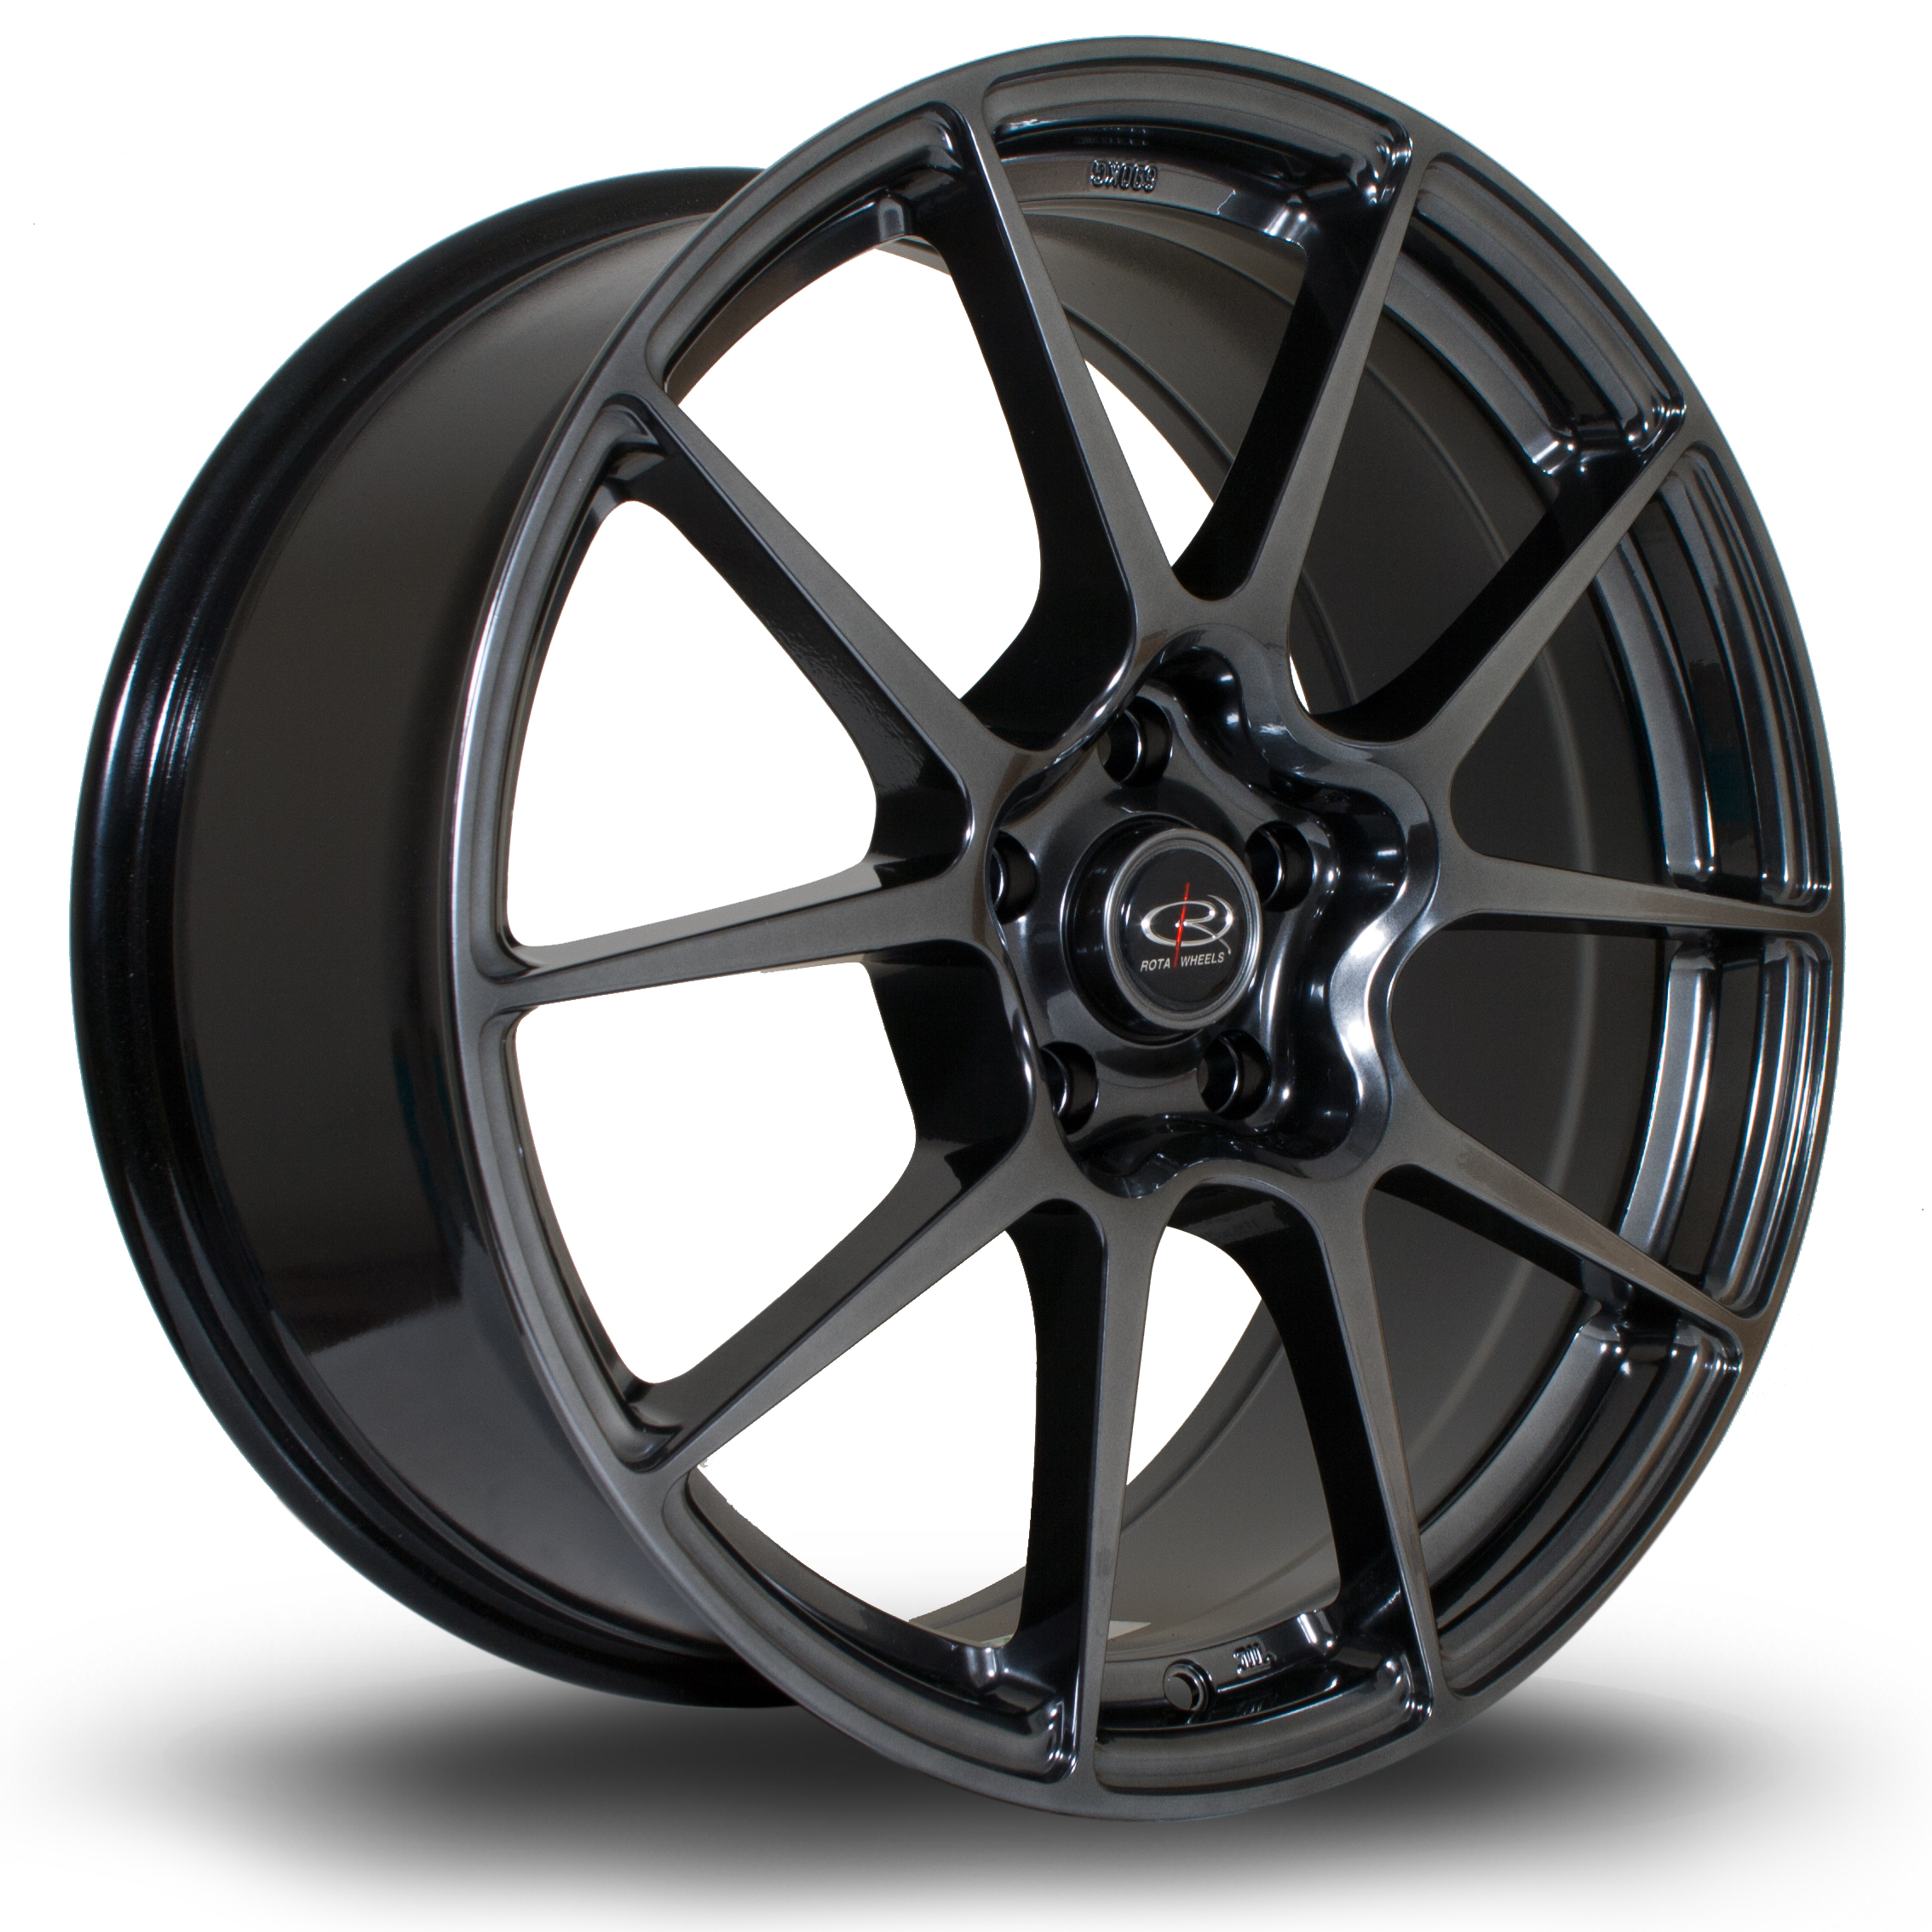 Rota AR10 wheels